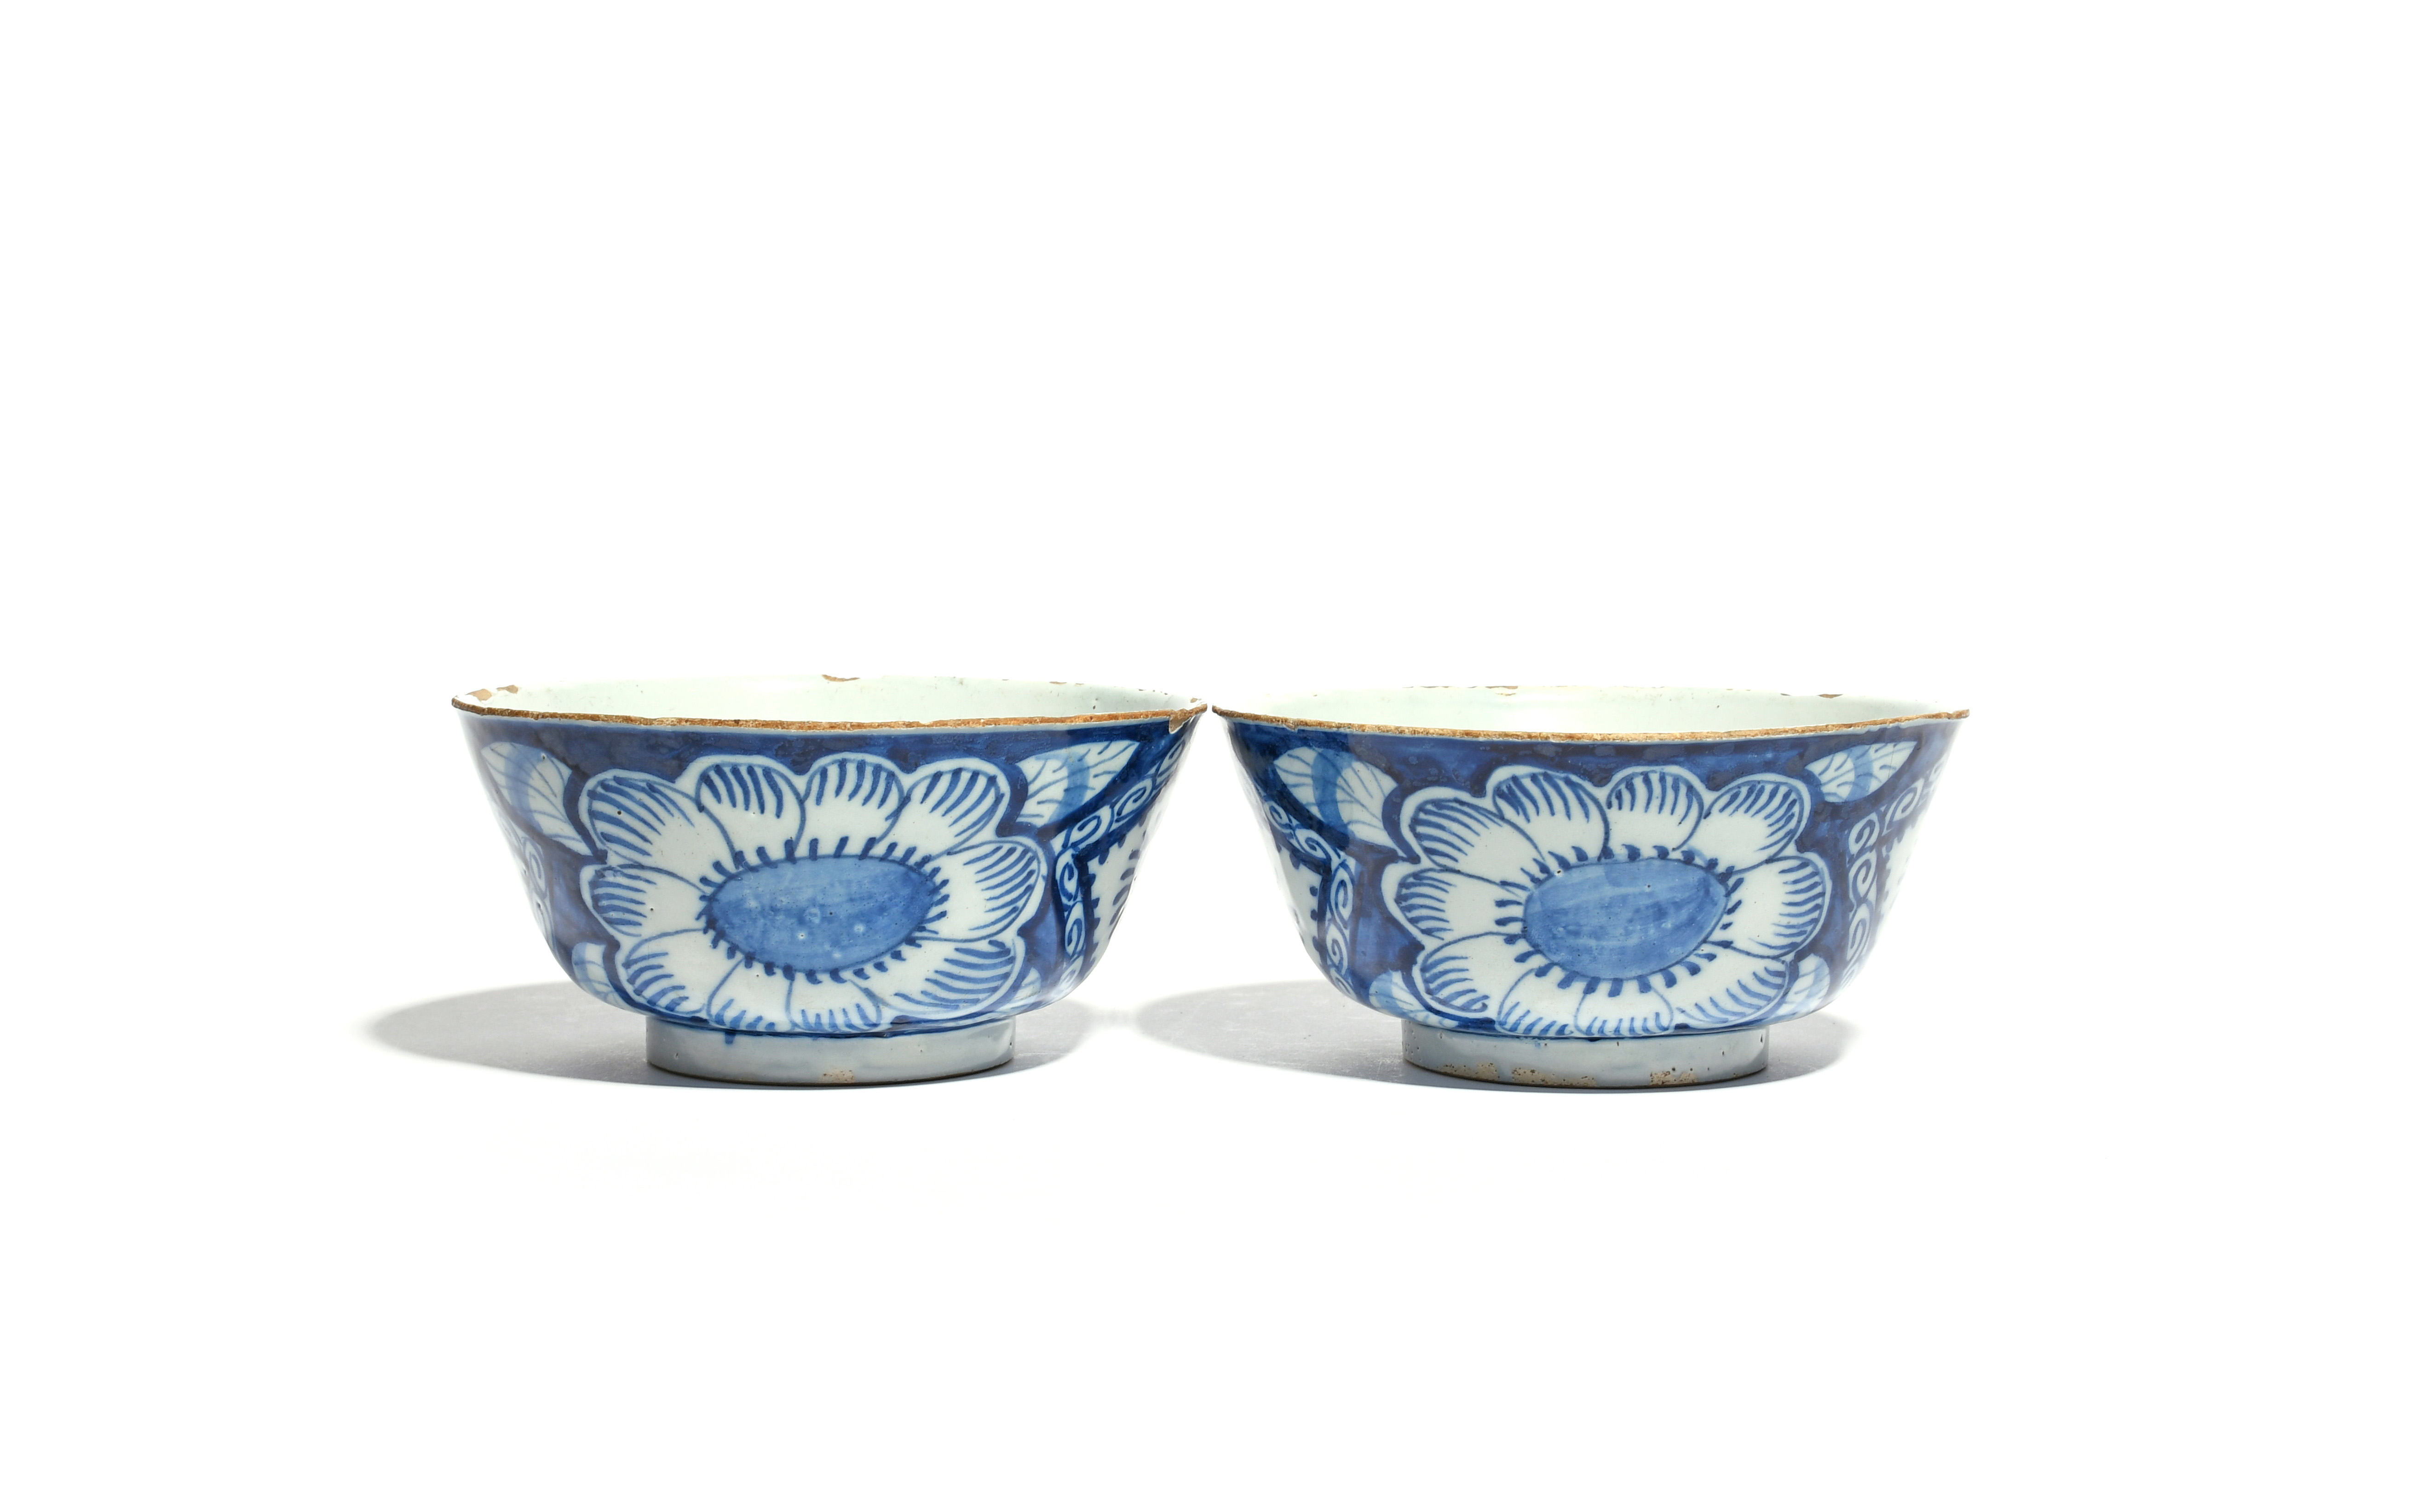 A pair of delftware bowls c.1730-40, the deep sides painted to the exterior with large flowerheads